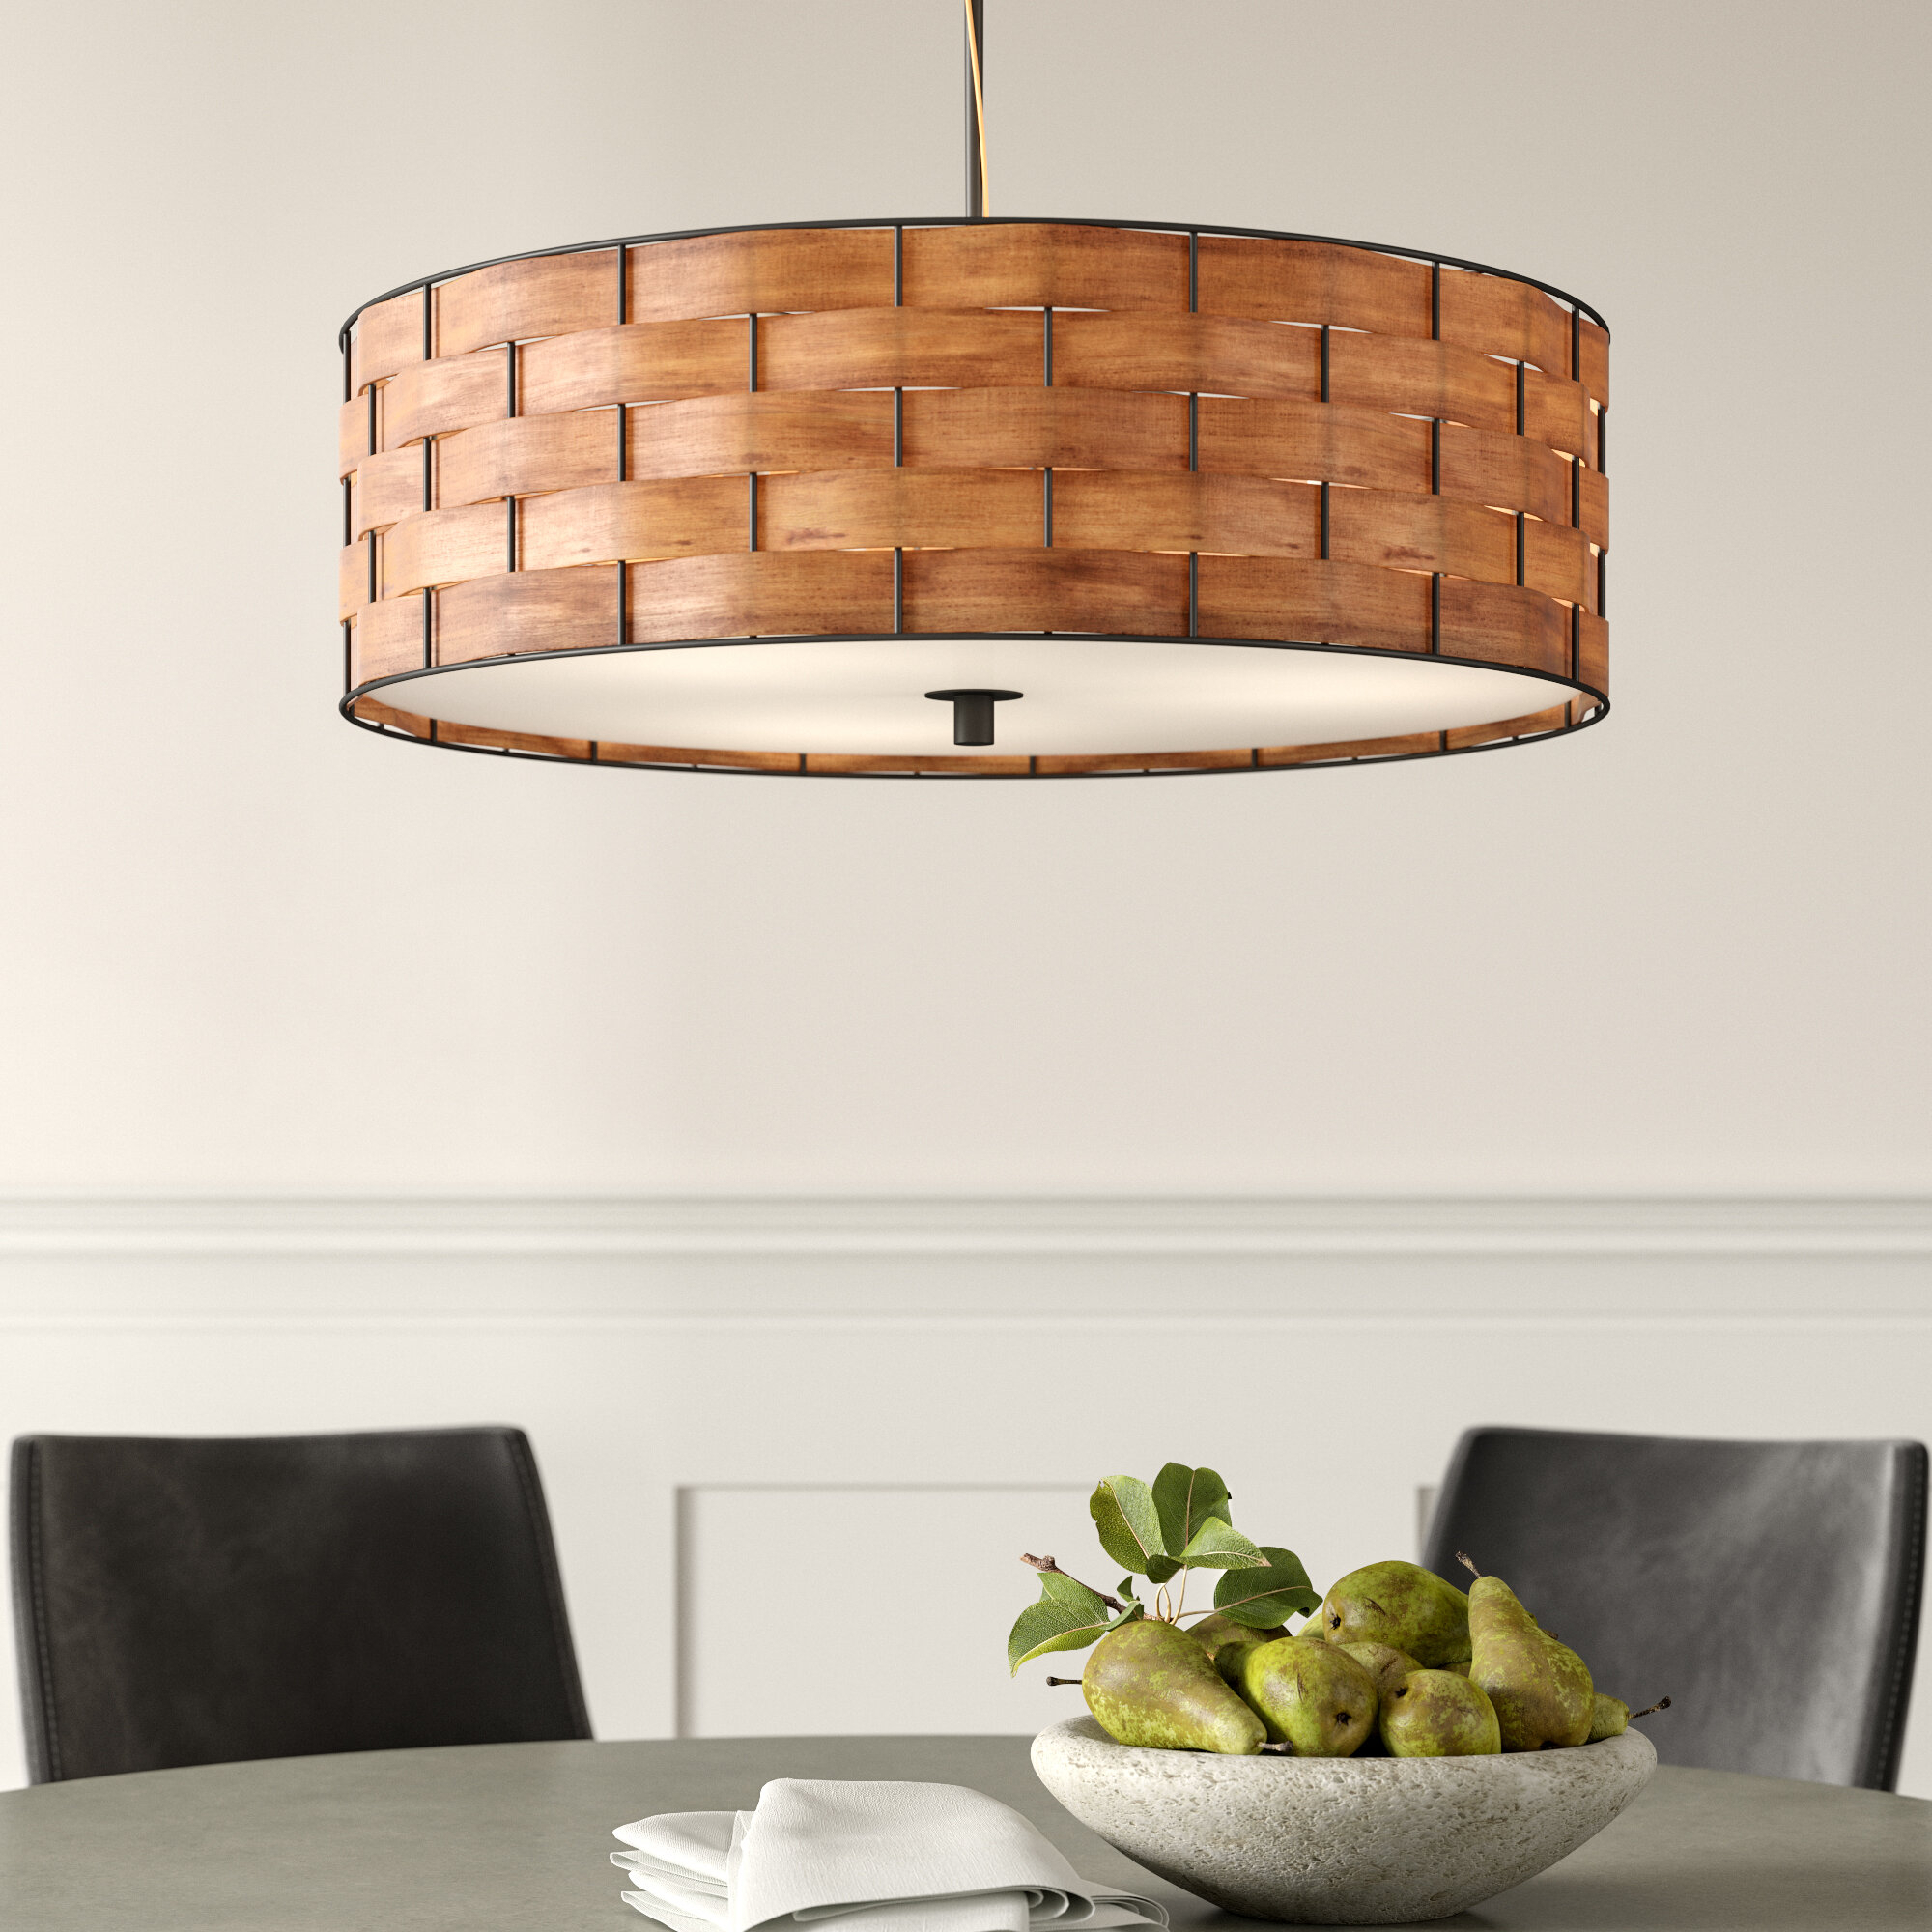 Fairlawn 3 Light Drum Chandelier Pertaining To Friedland 3 Light Drum Tiered Pendants (View 11 of 30)